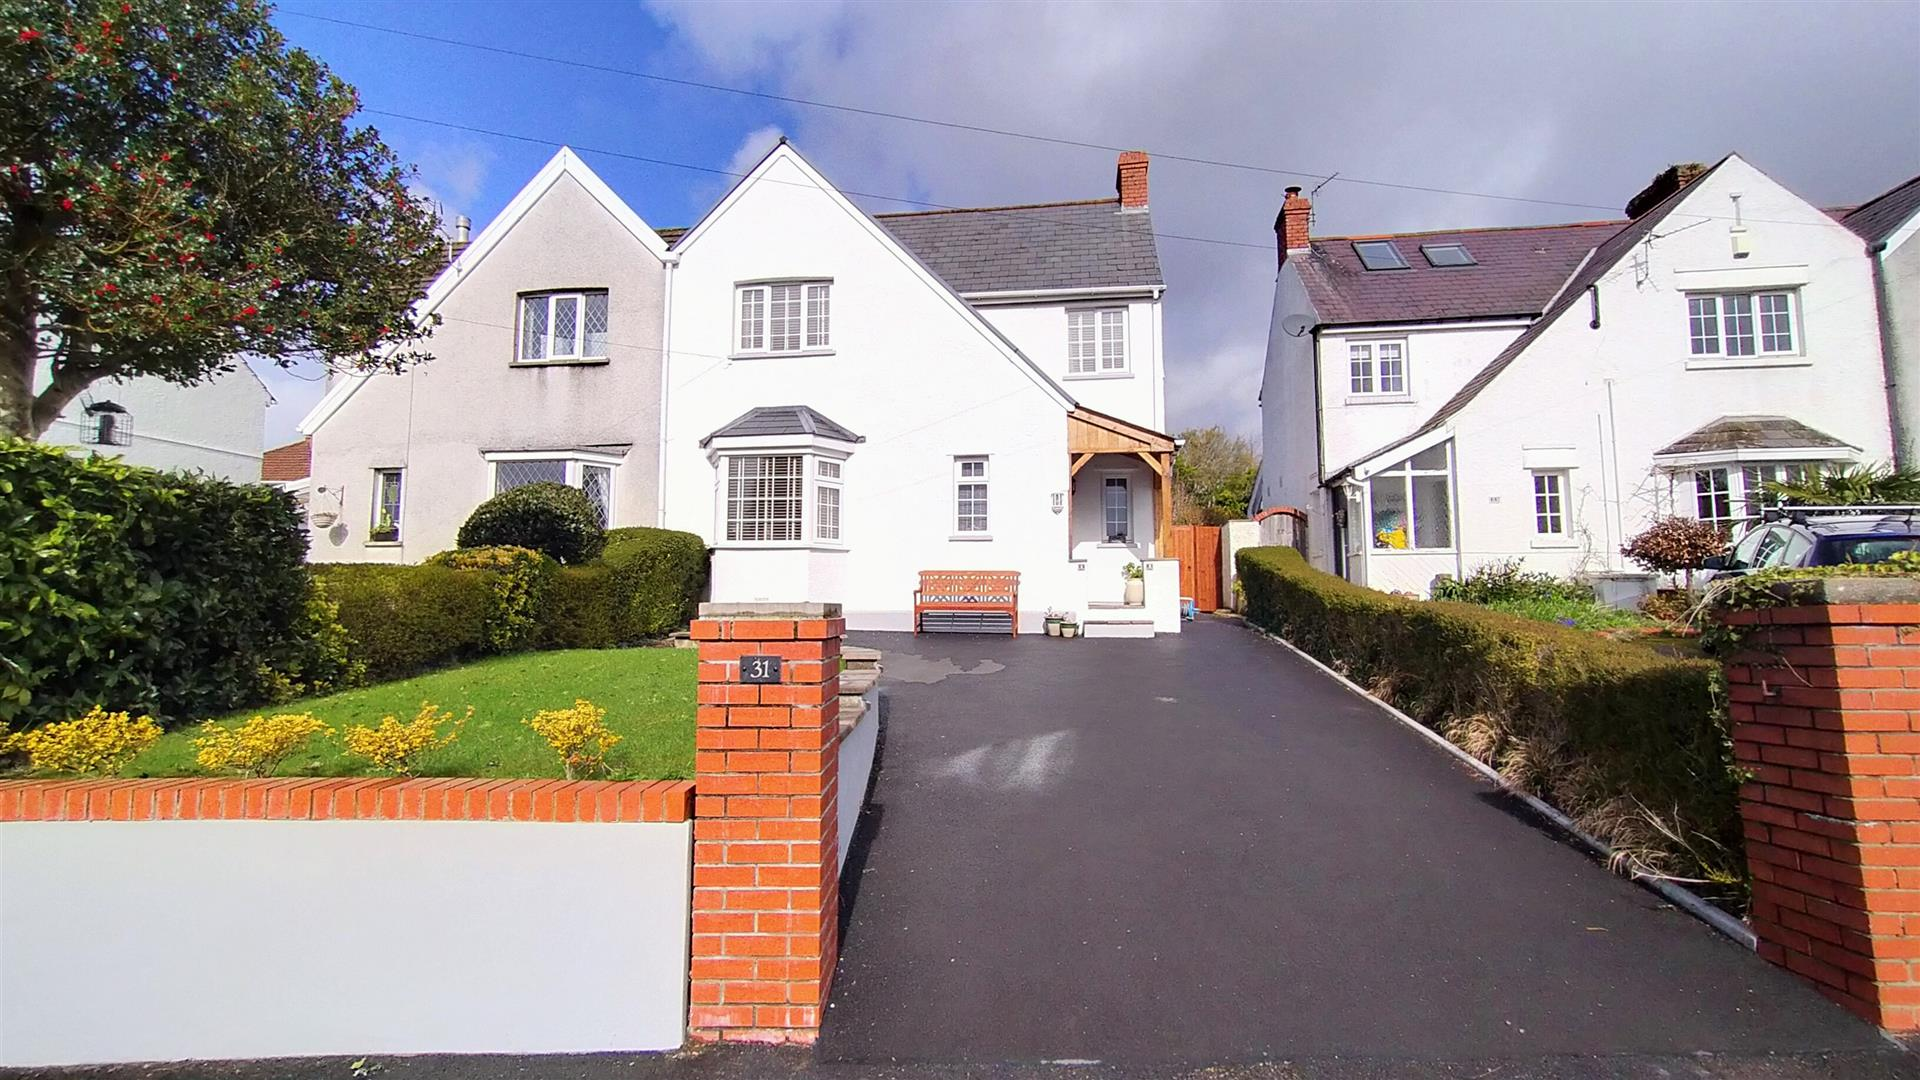 Bellevue Road, West Cross, Swansea, SA3 5QB